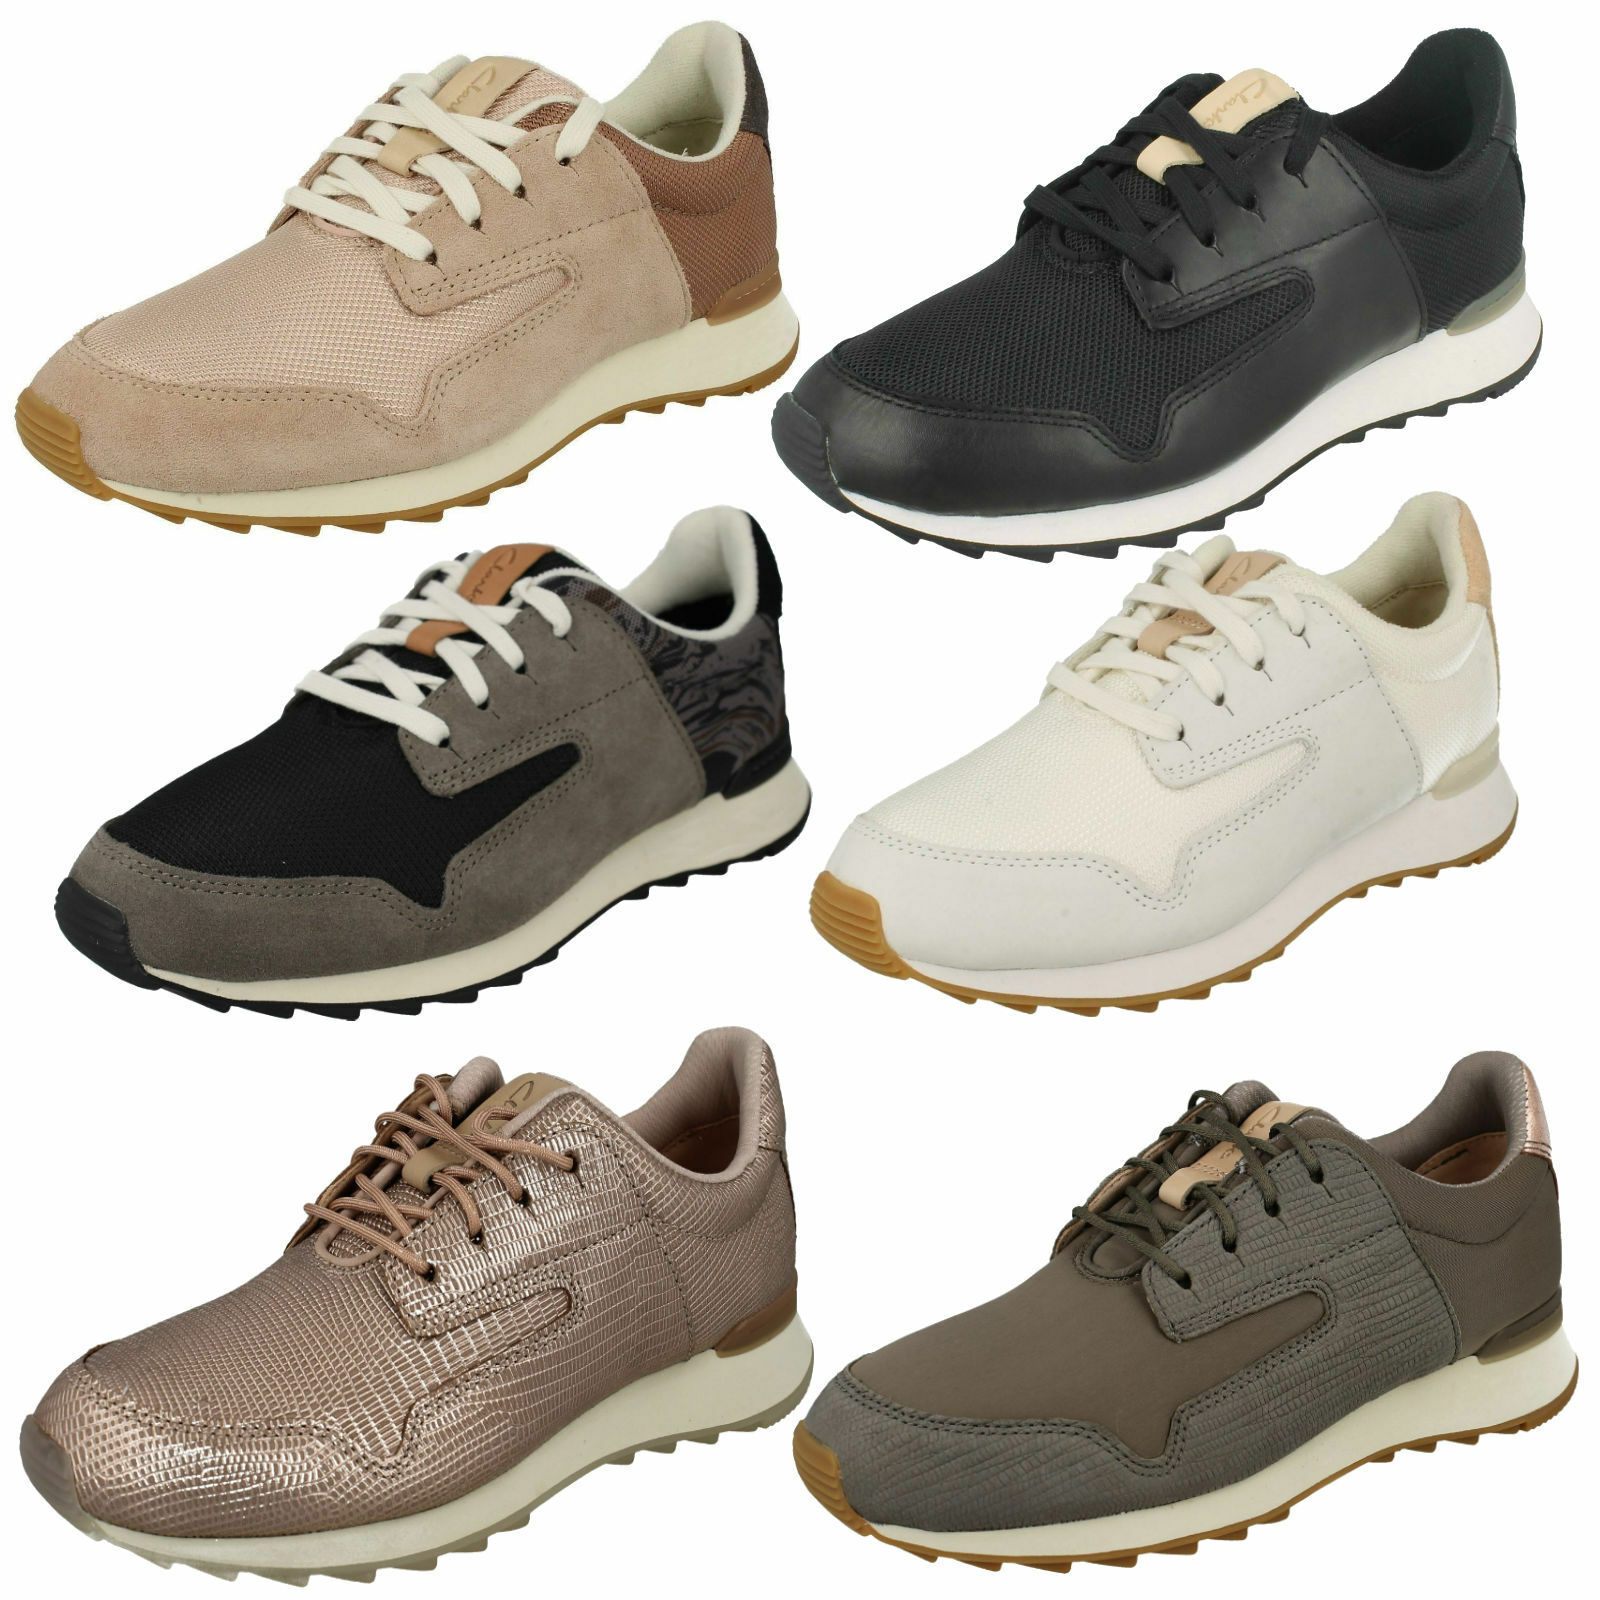 LADIES CLARKS LACE UP CASUAL WALKING LEATHER TRAINERS SPORTS SHOES FLOURA MIX